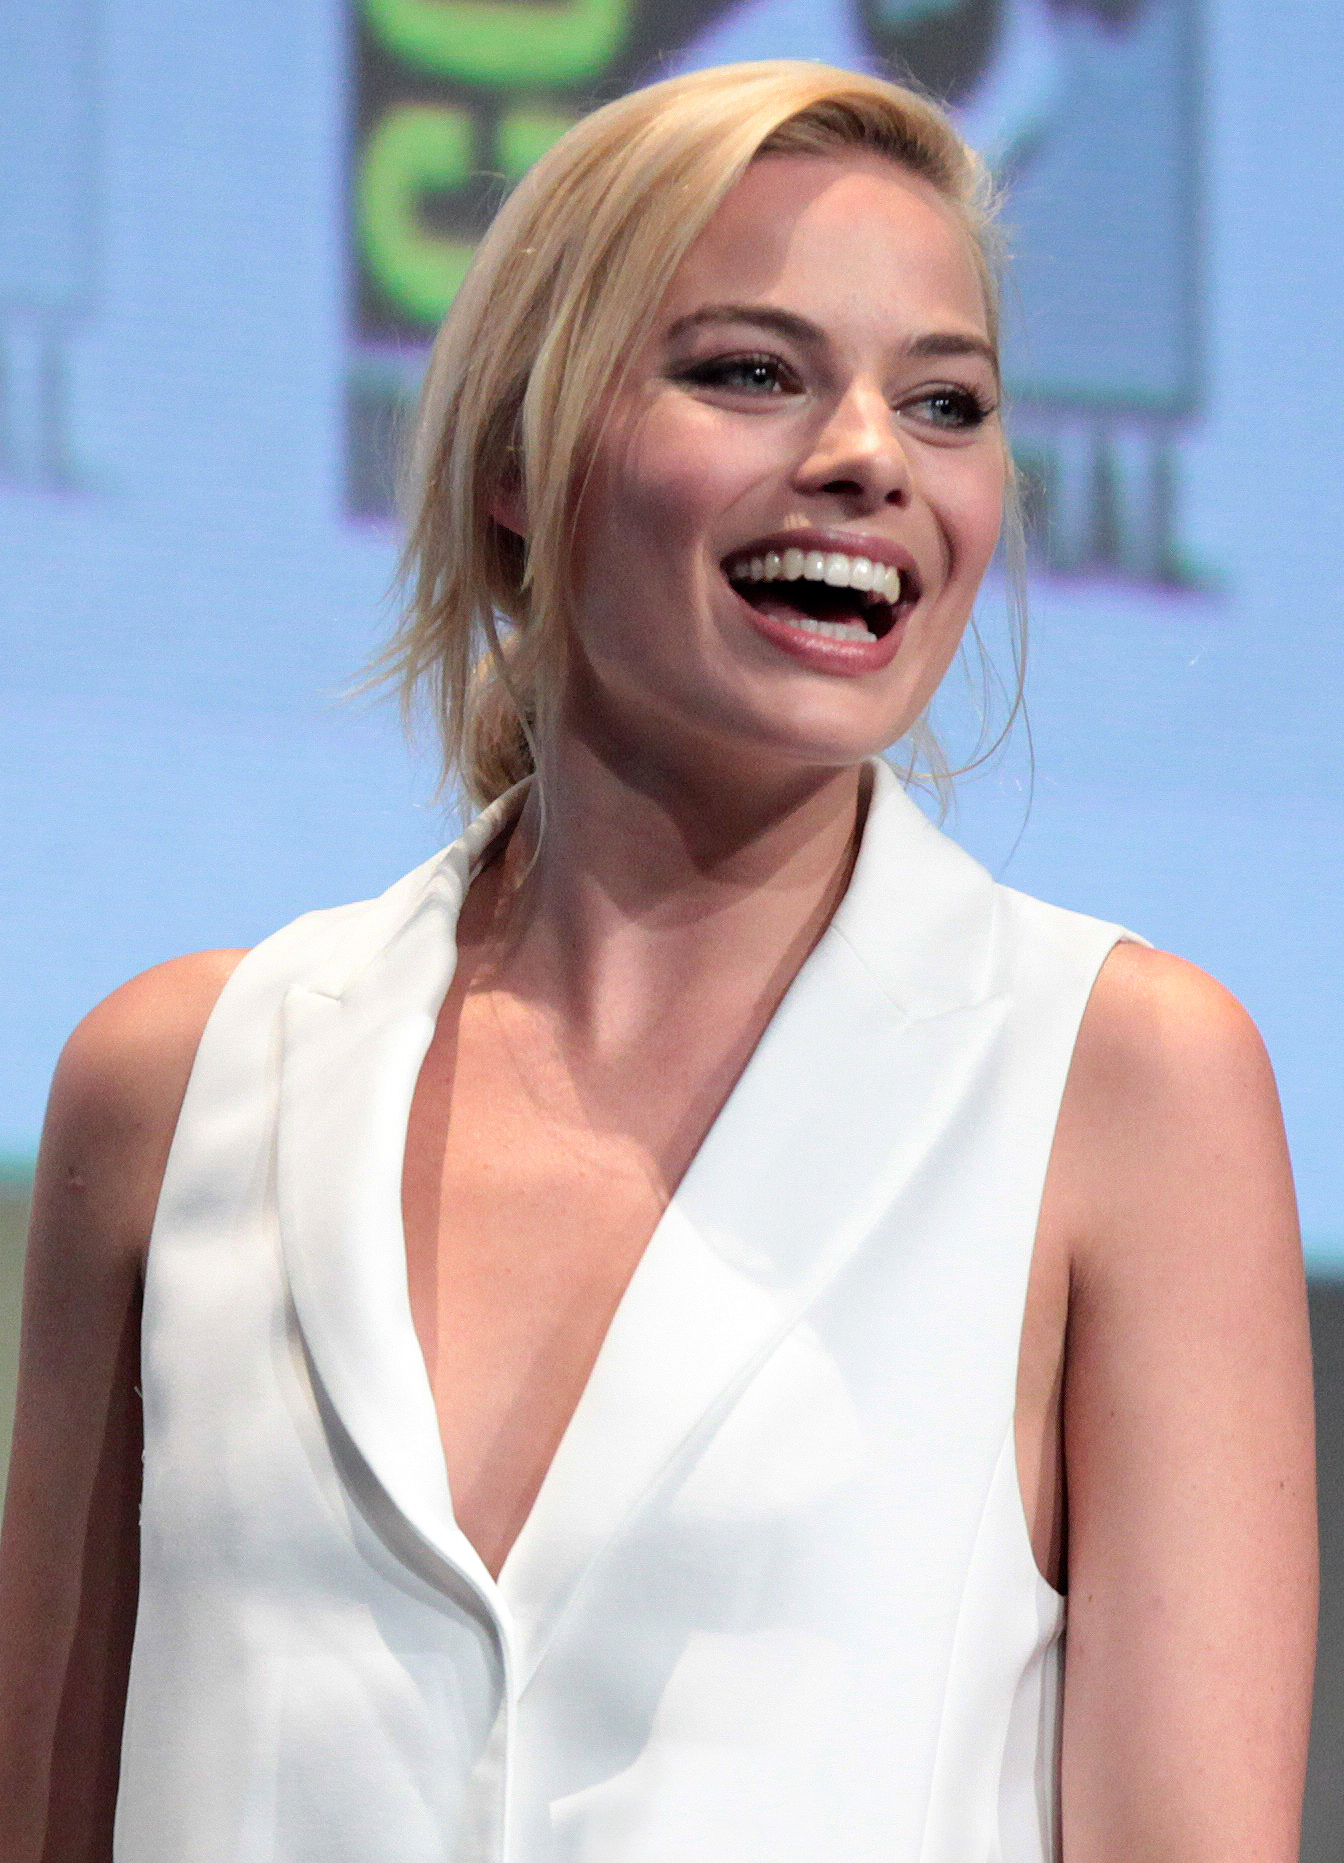 Margot Robbie Smiling Pics - Margot Robbie Net Worth, Pics, Wallpapers, Career and Biography